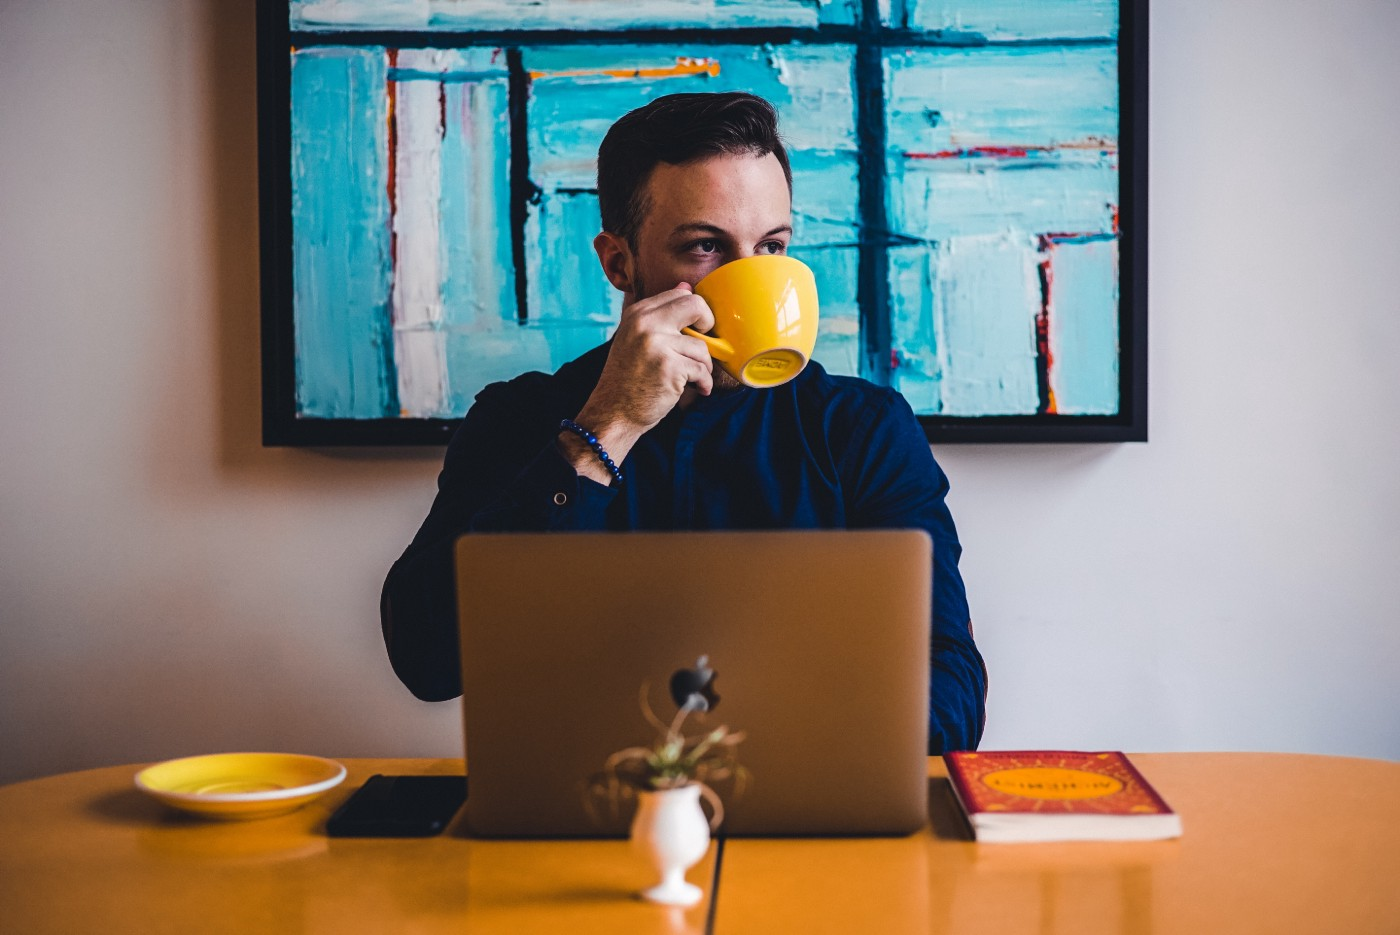 Man sips from a yellow mug while using a laptop. Angular oil painting on the wall behind him.